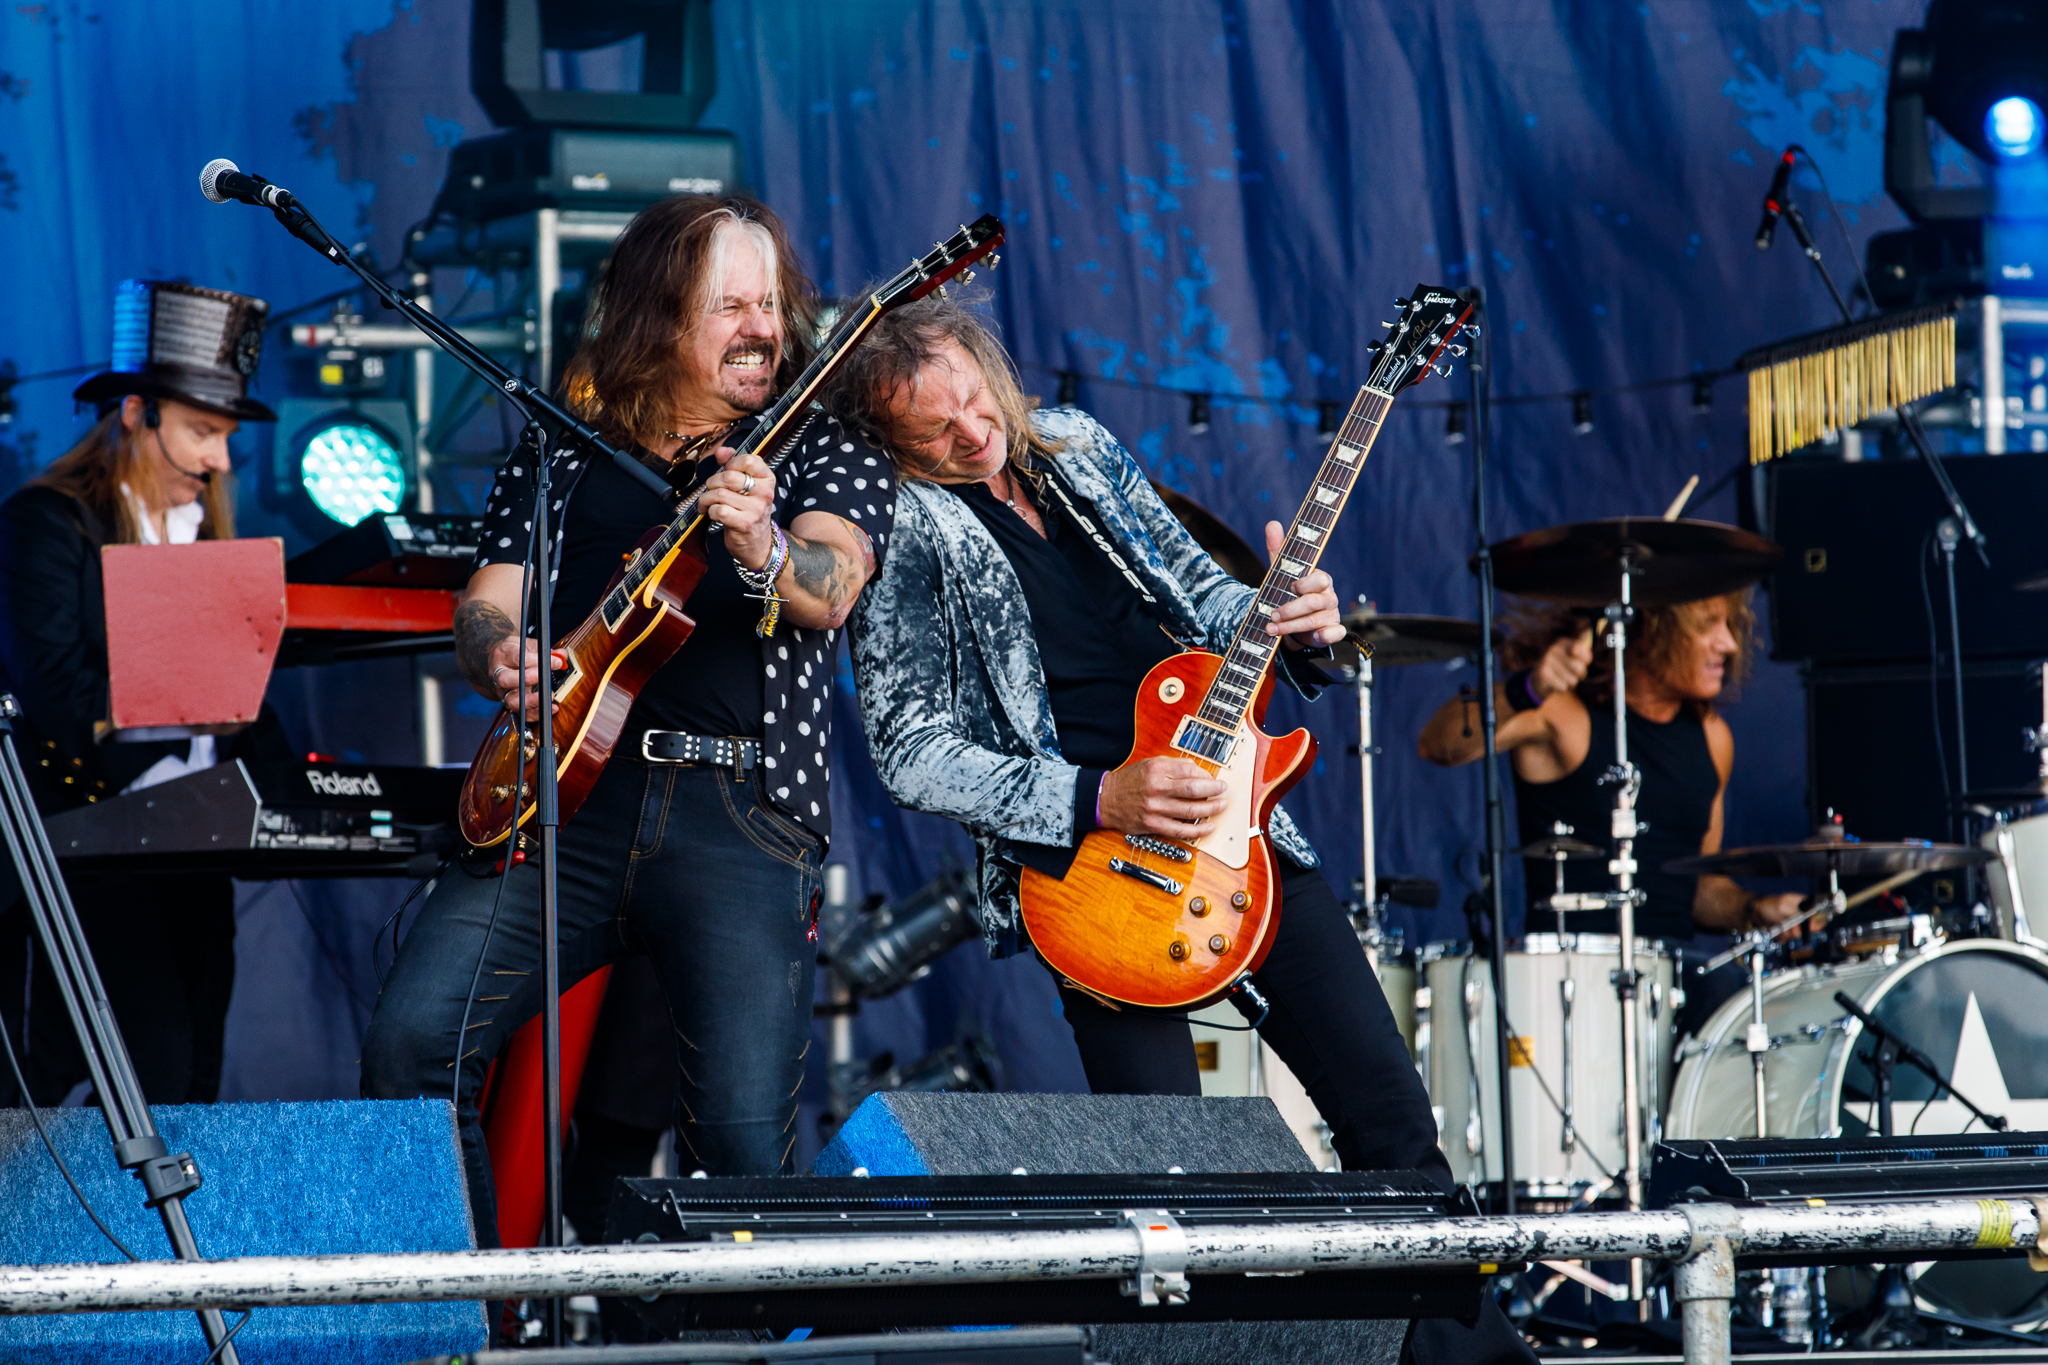 Cats In Space at Fairport's Cropredy Convention (photo by Matt Condon / @arcane93)